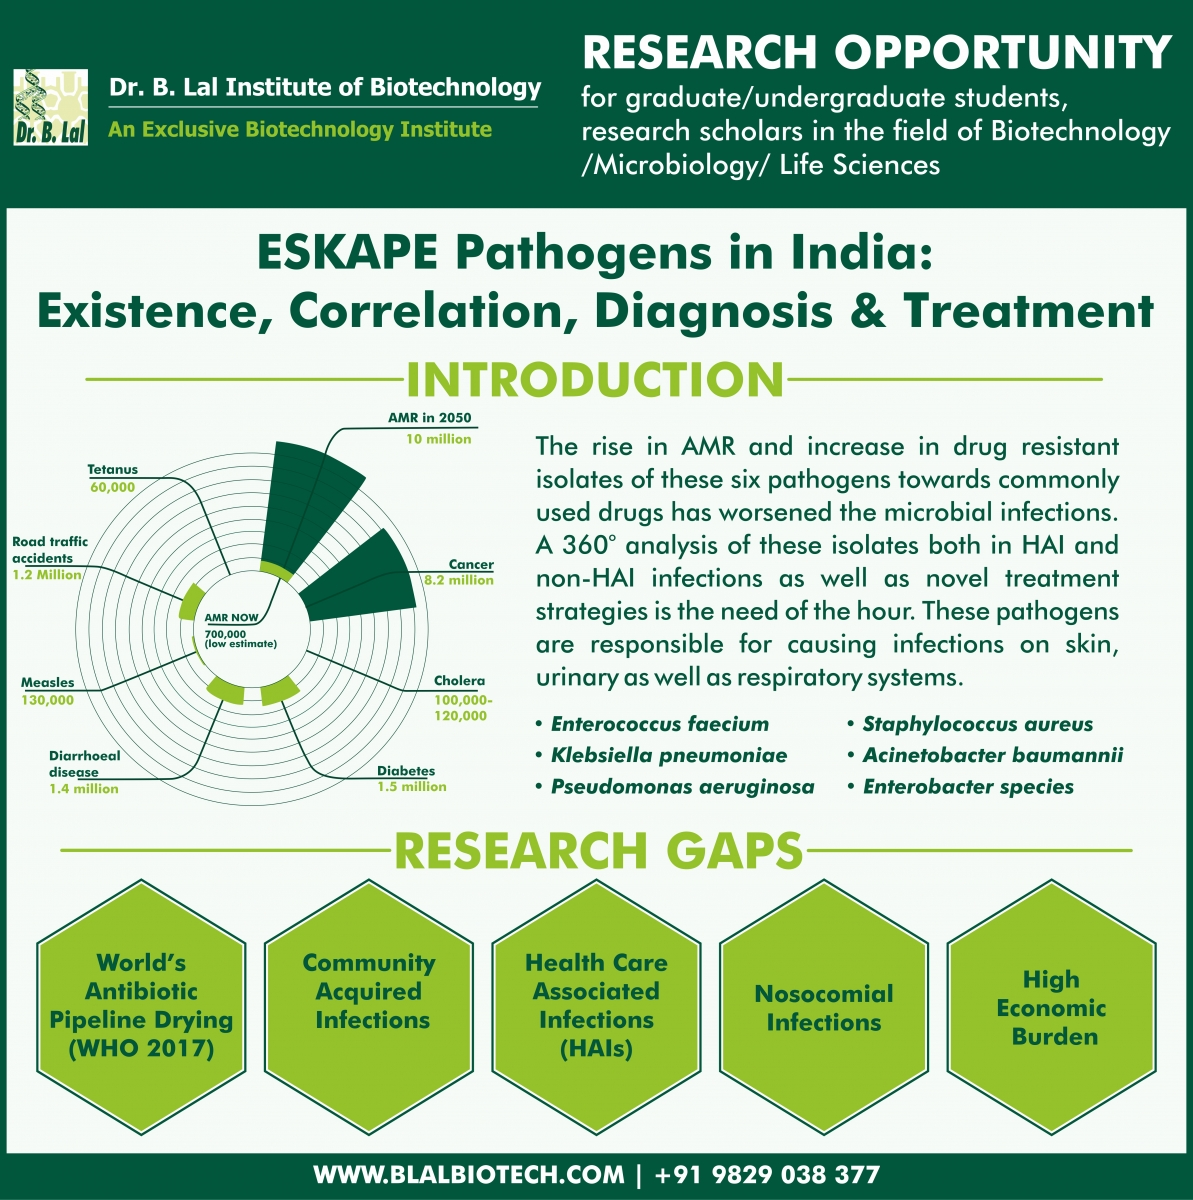 Research Opportunity At Dr. B. Lal Institute of Biotechnology, Jaipur